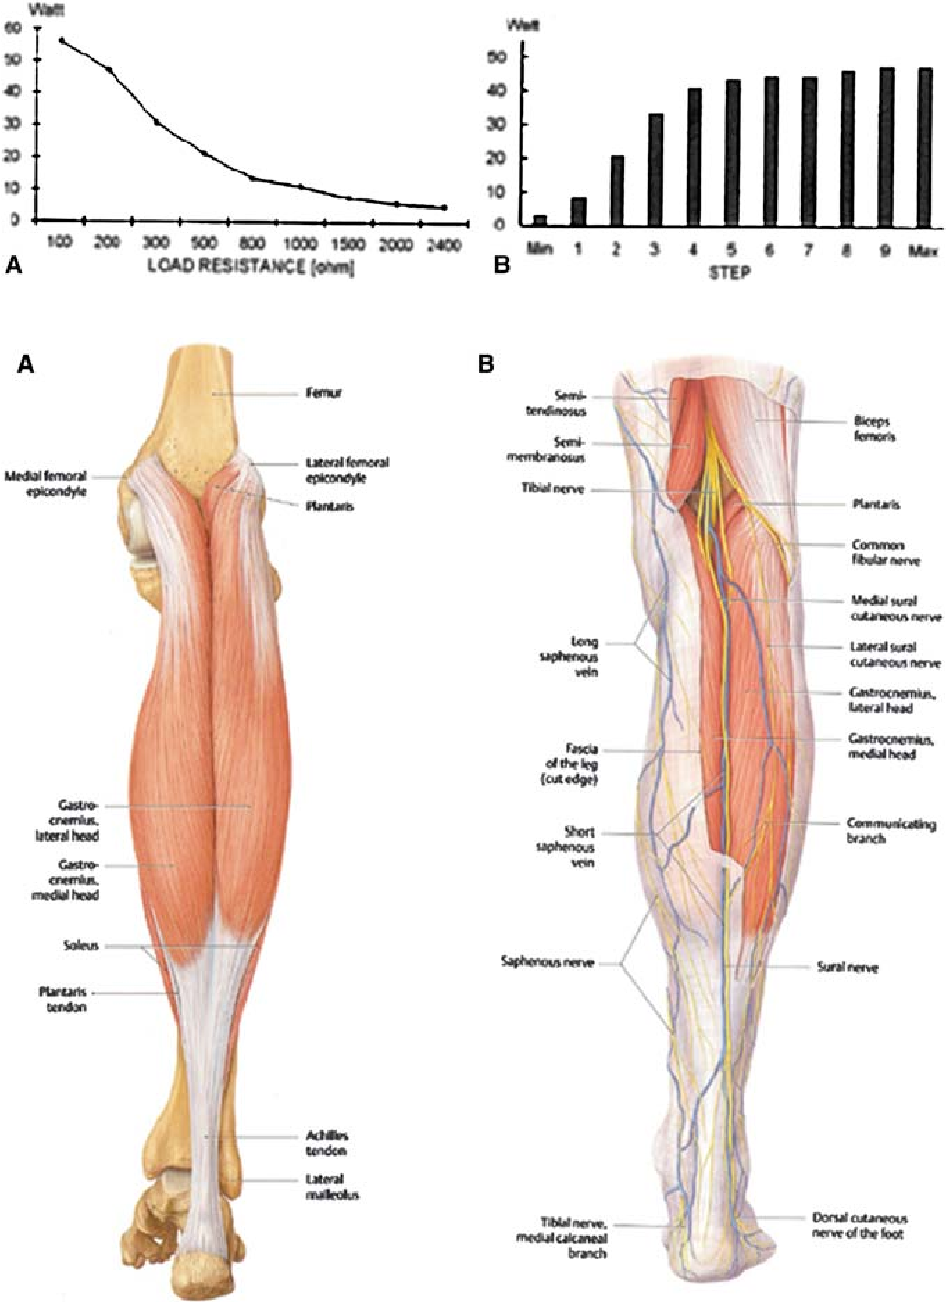 Radiofrequency Volume Reduction Of Gastrocnemius Muscle Hypertrophy